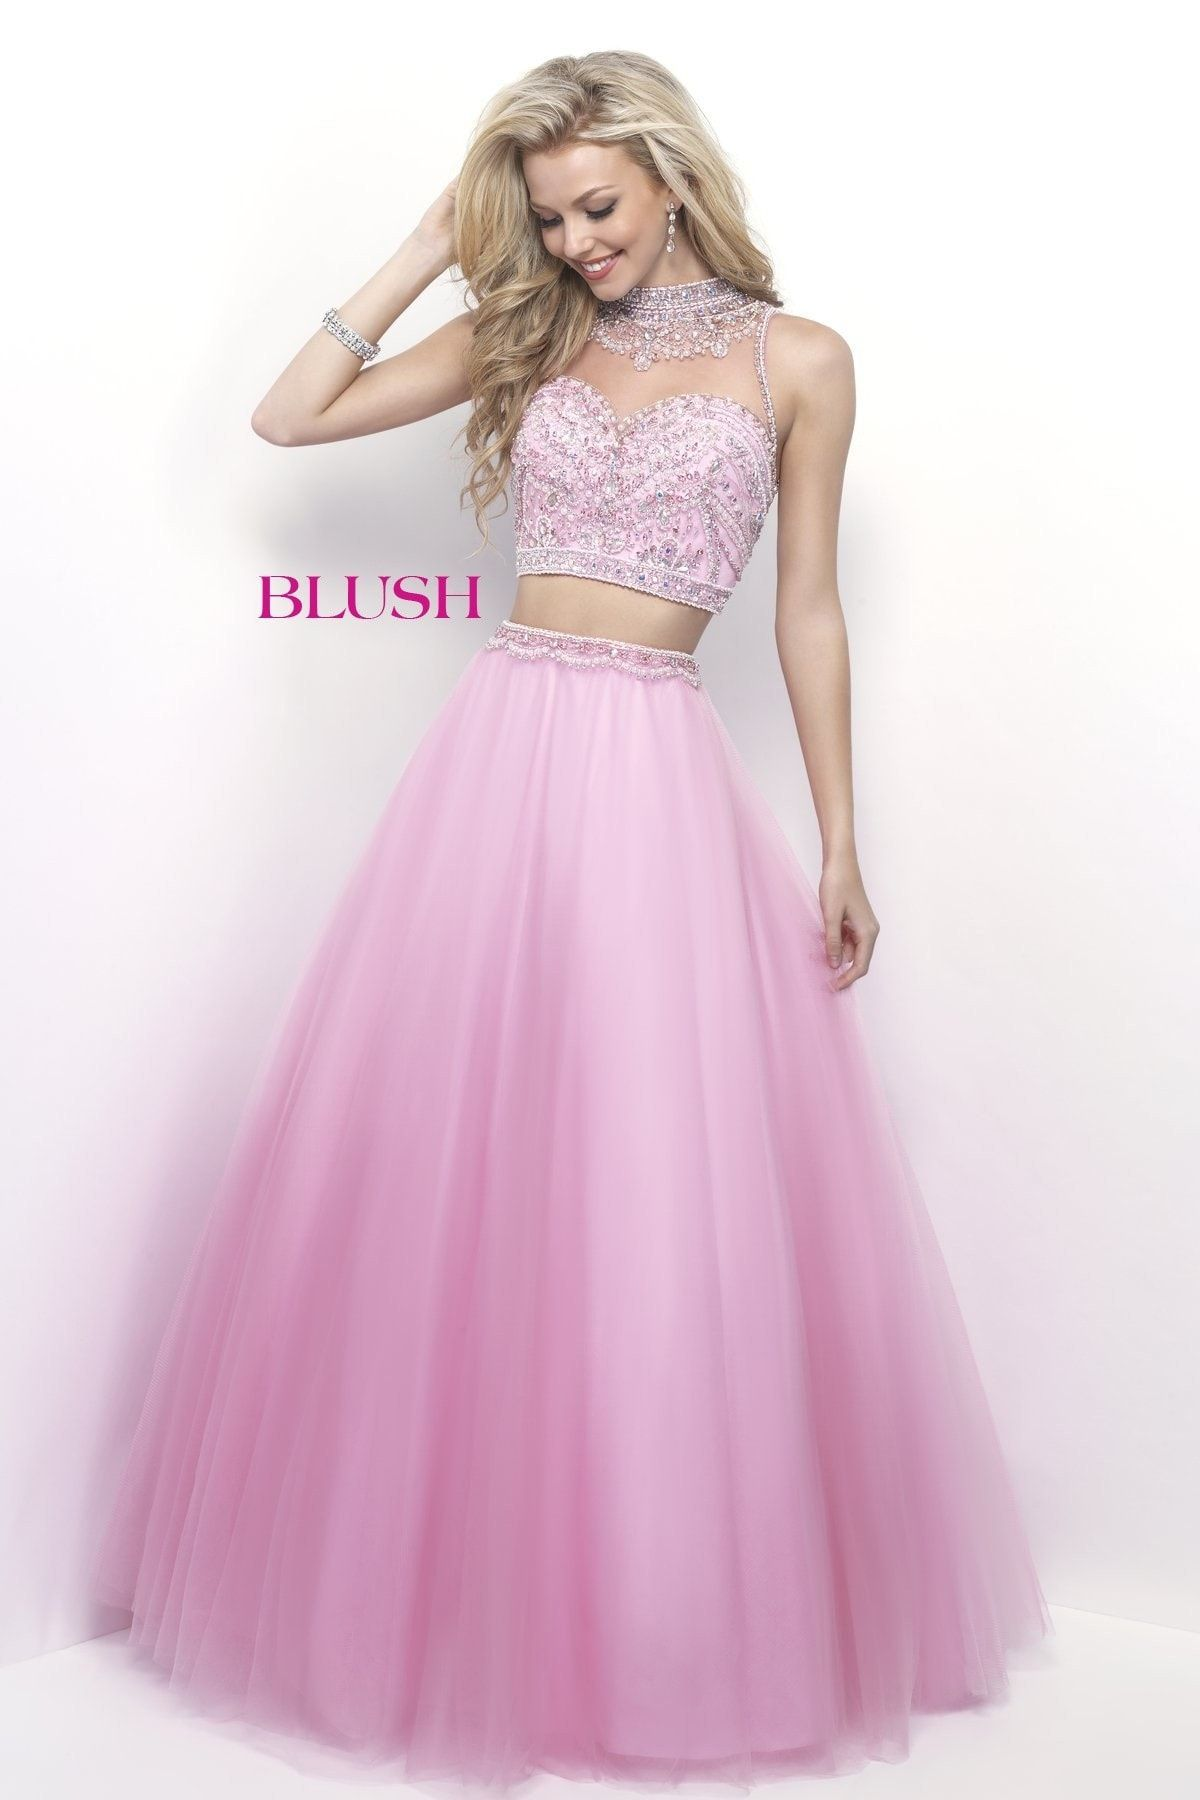 Pink by Blush 5618 Cotton Candy Pink Two-Piece Prom Dress | Prom ...